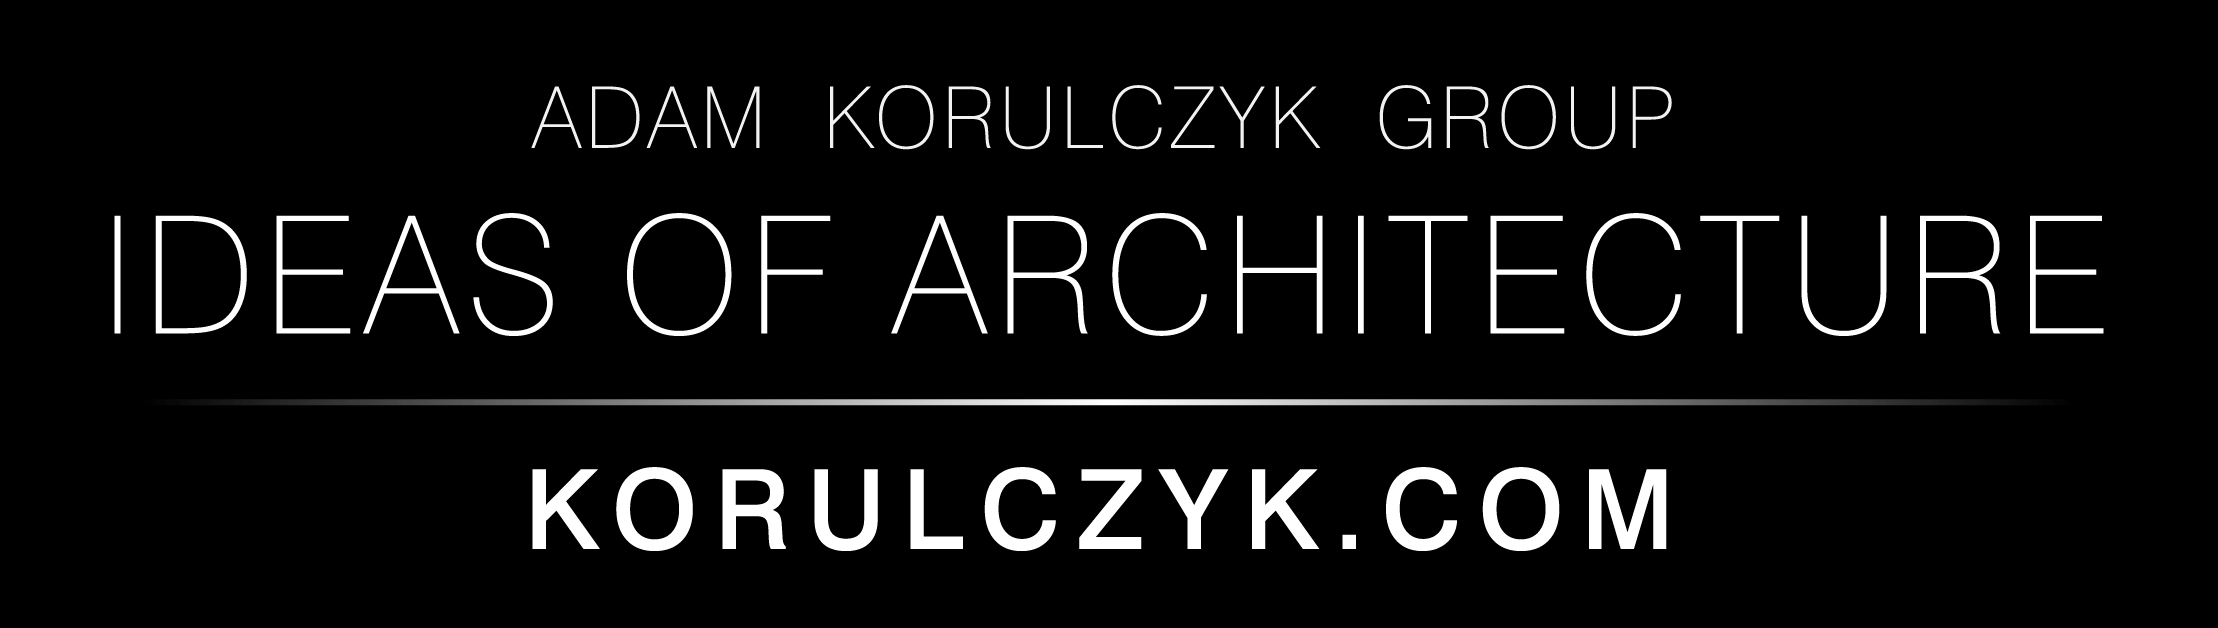 KORULCZYK  |  ideas of architecture  |  www.korulczyk.com